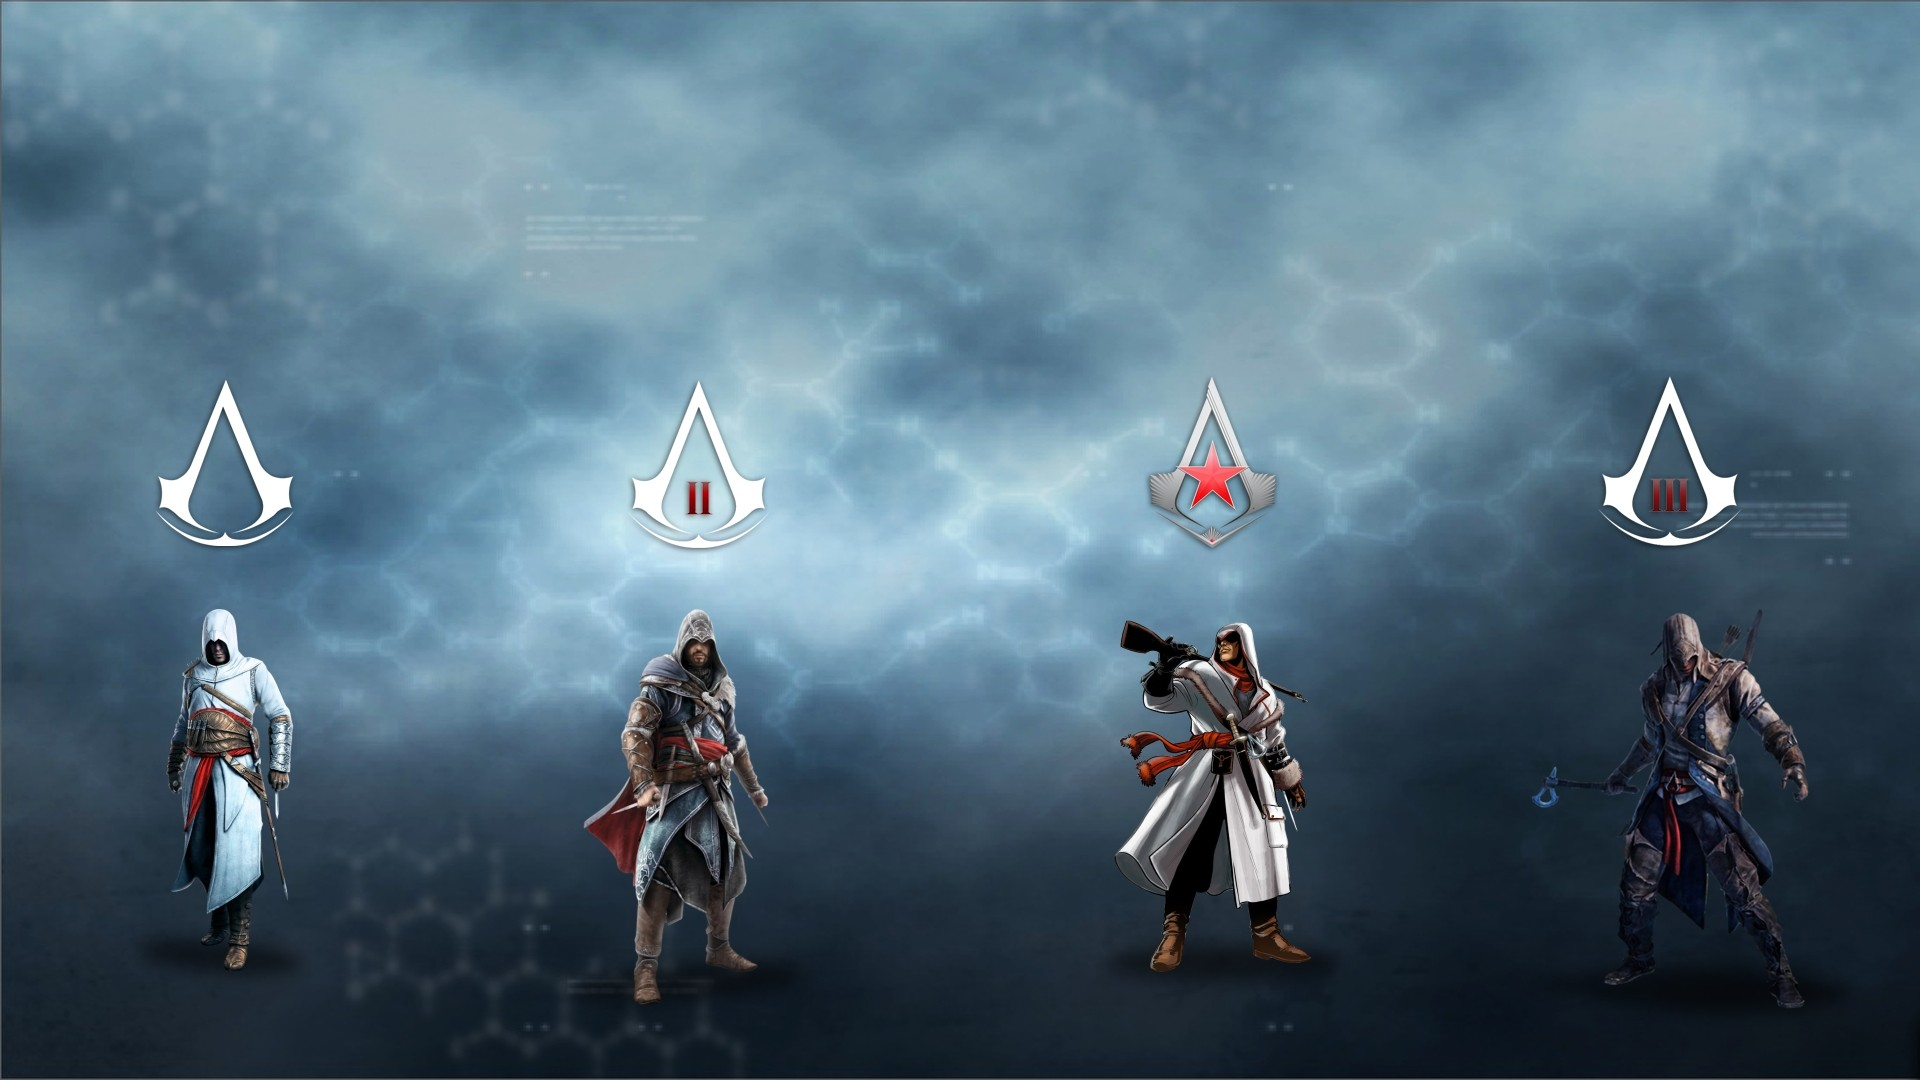 ... Abyss Everything Assassin's Creed Video Game Assassin's Creed 235560